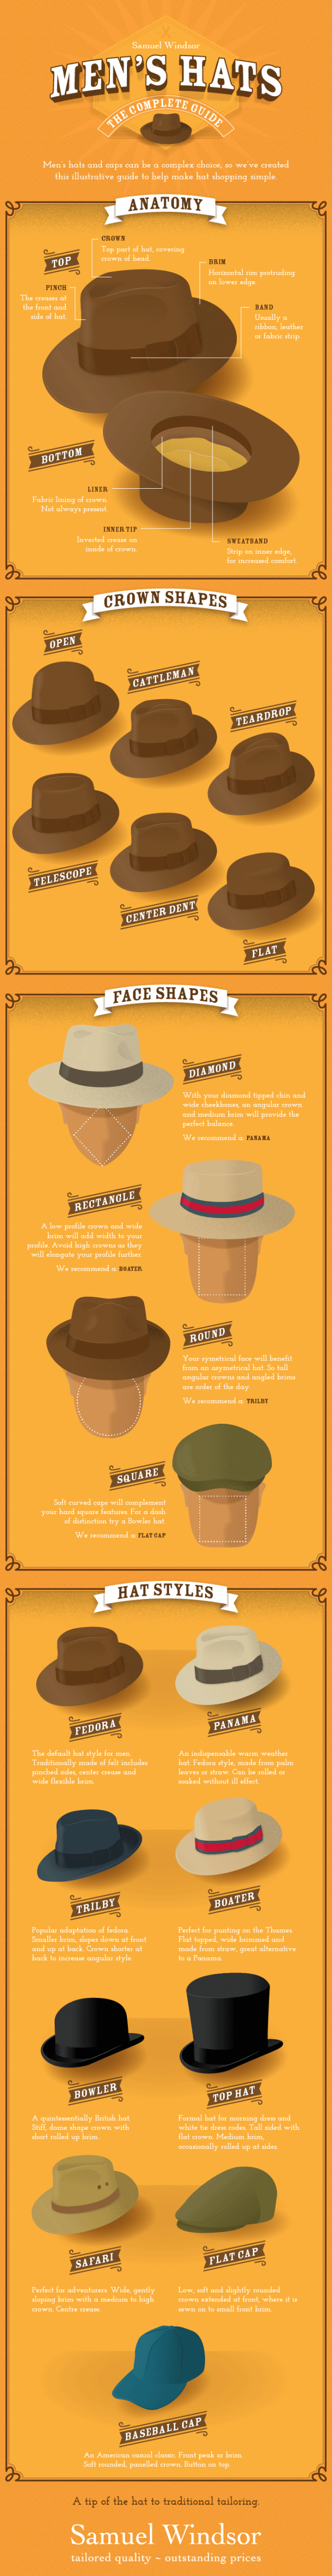 How To Wear A Hat Beanie Fedora Floppy Cloche To Fit Your Face Shape Today Com Haircuts For Round Face Shape Face Shapes Round Face